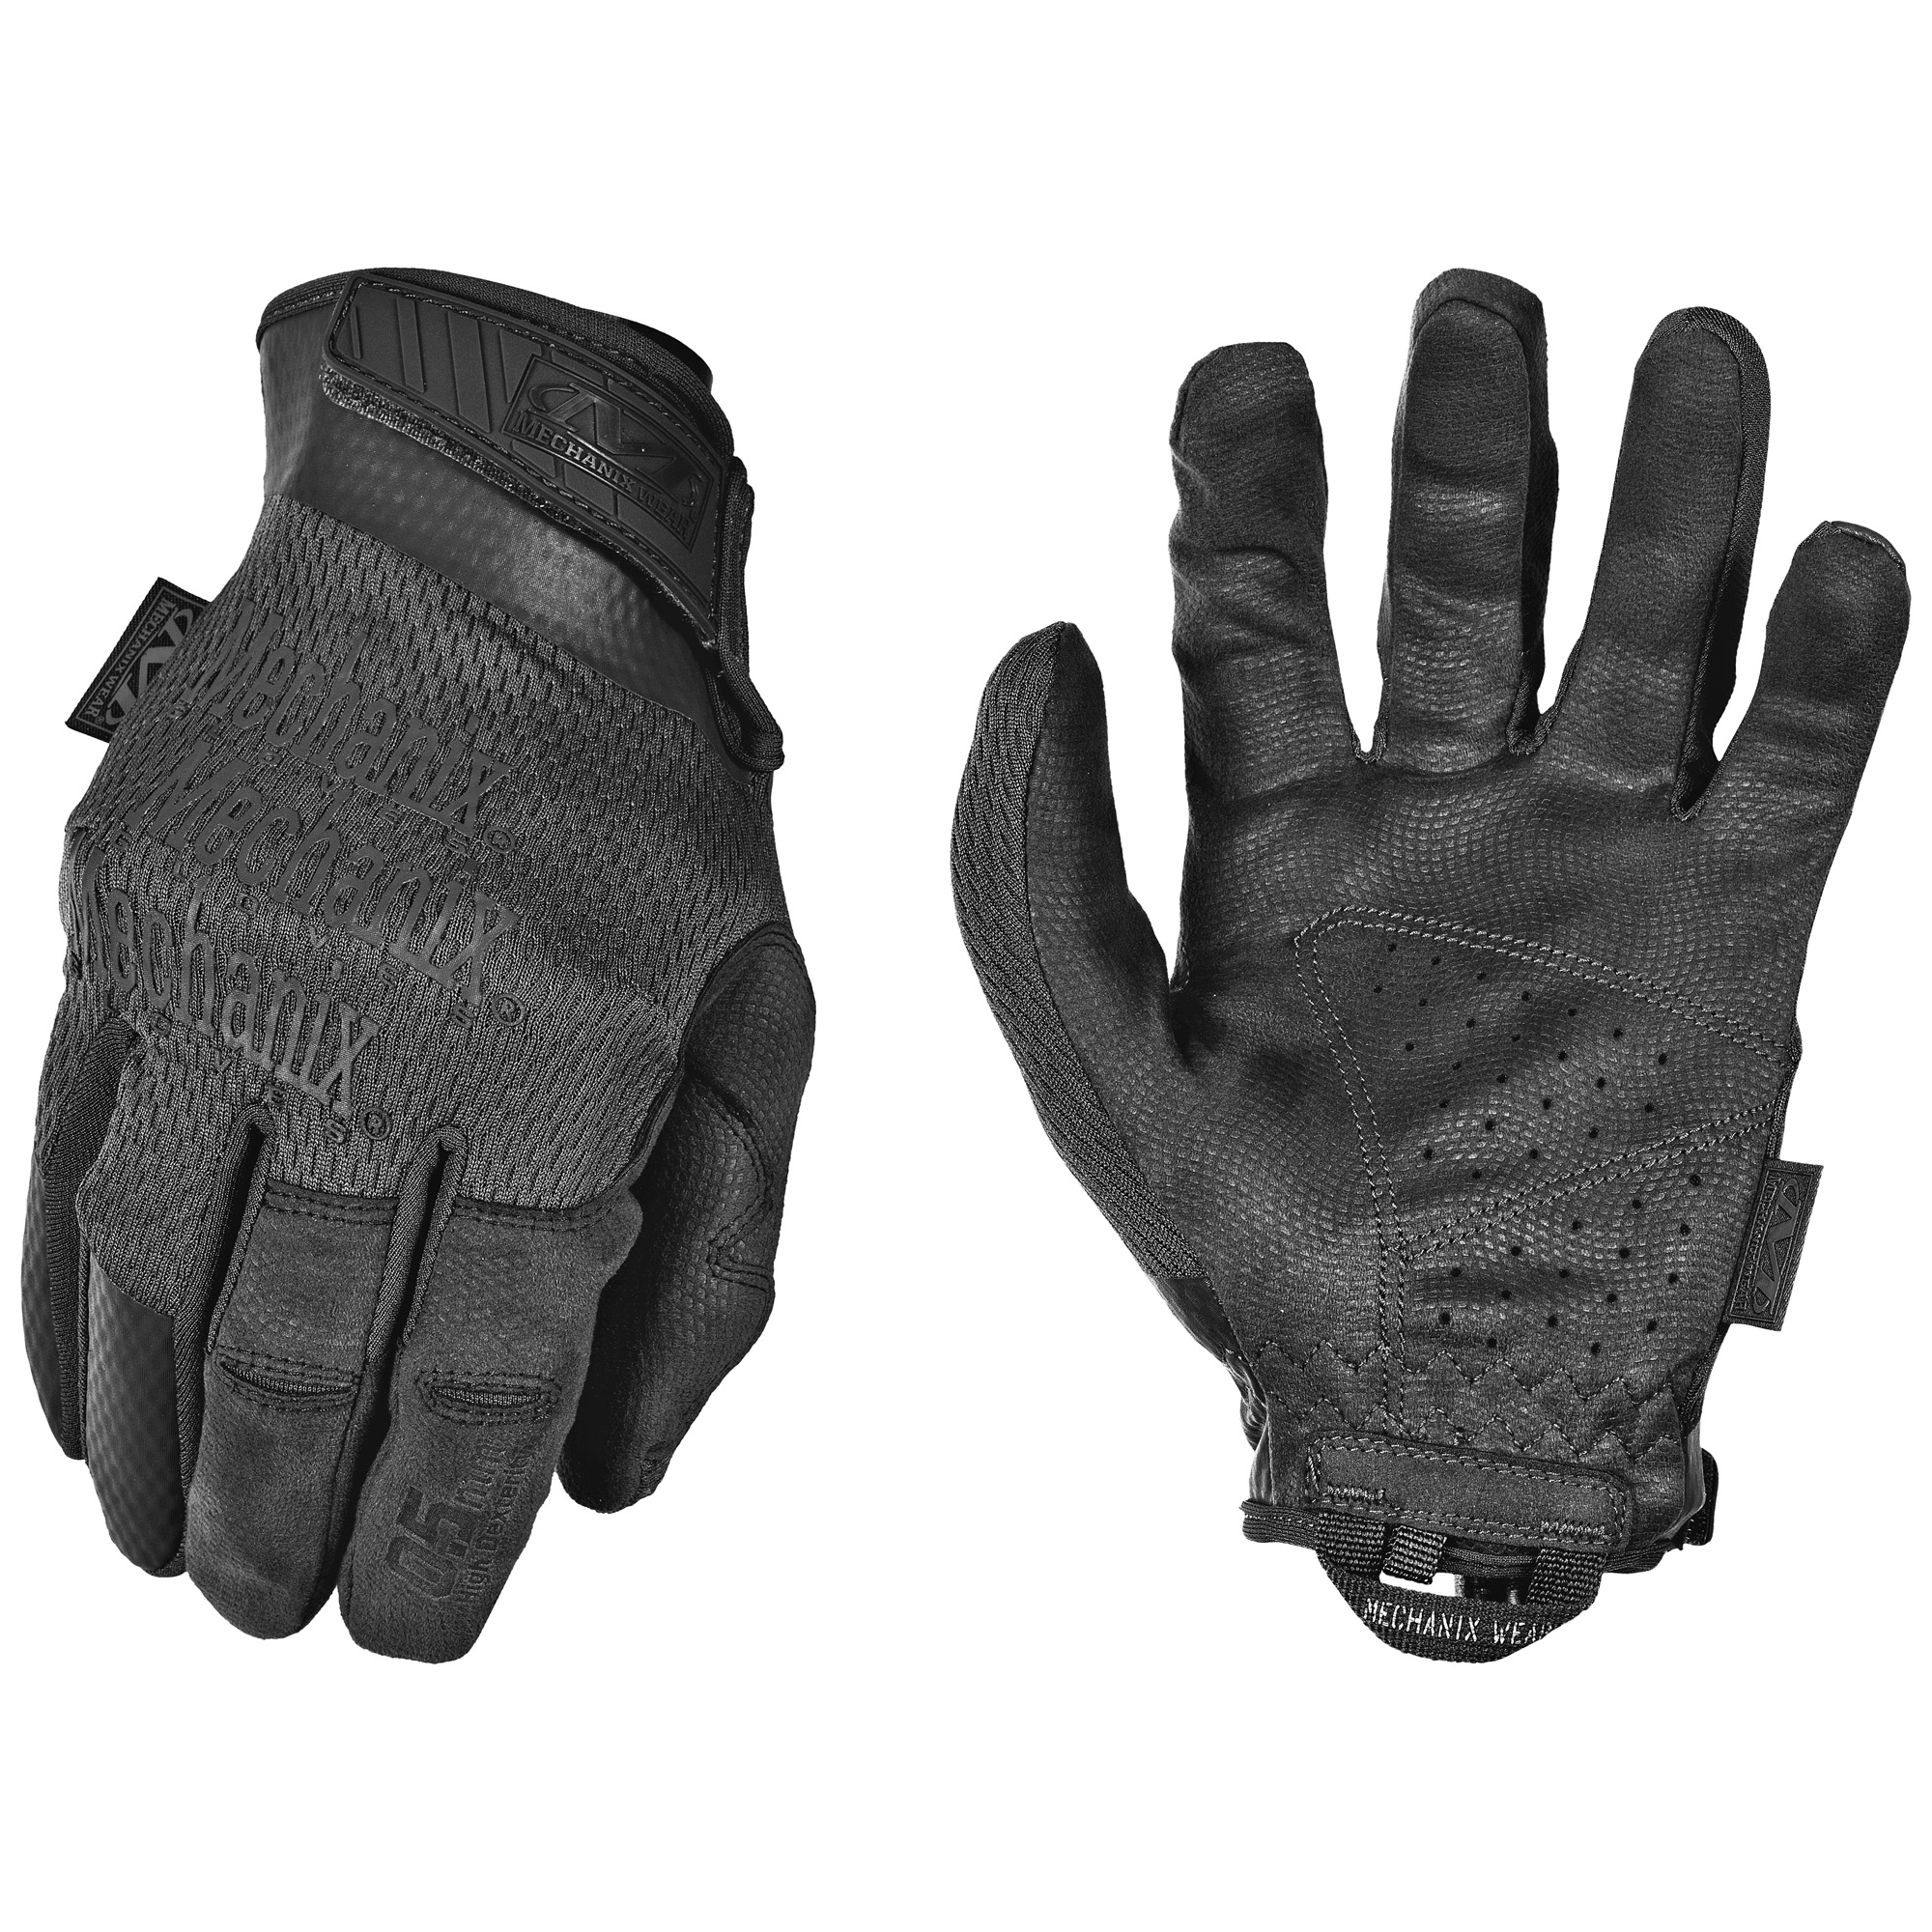 Mechanix Wear Spl 0.5mm Covert Xl